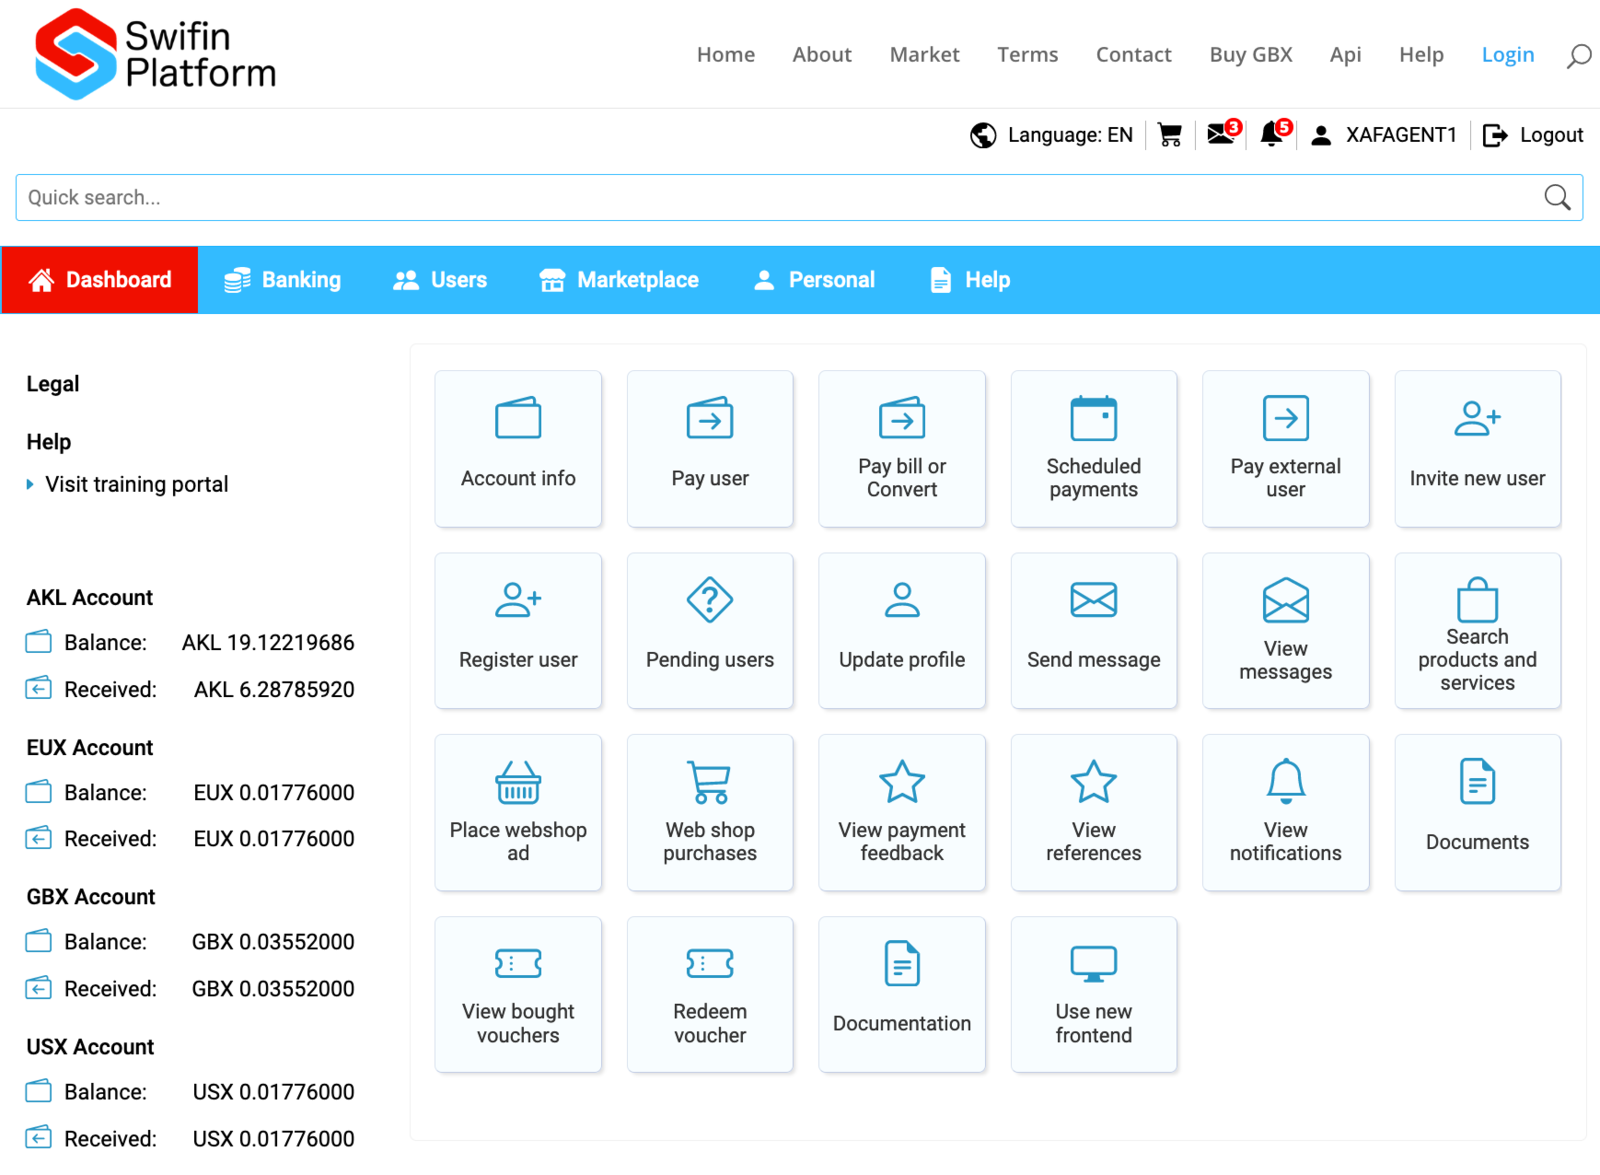 Classic online frontend for Swifin Platform